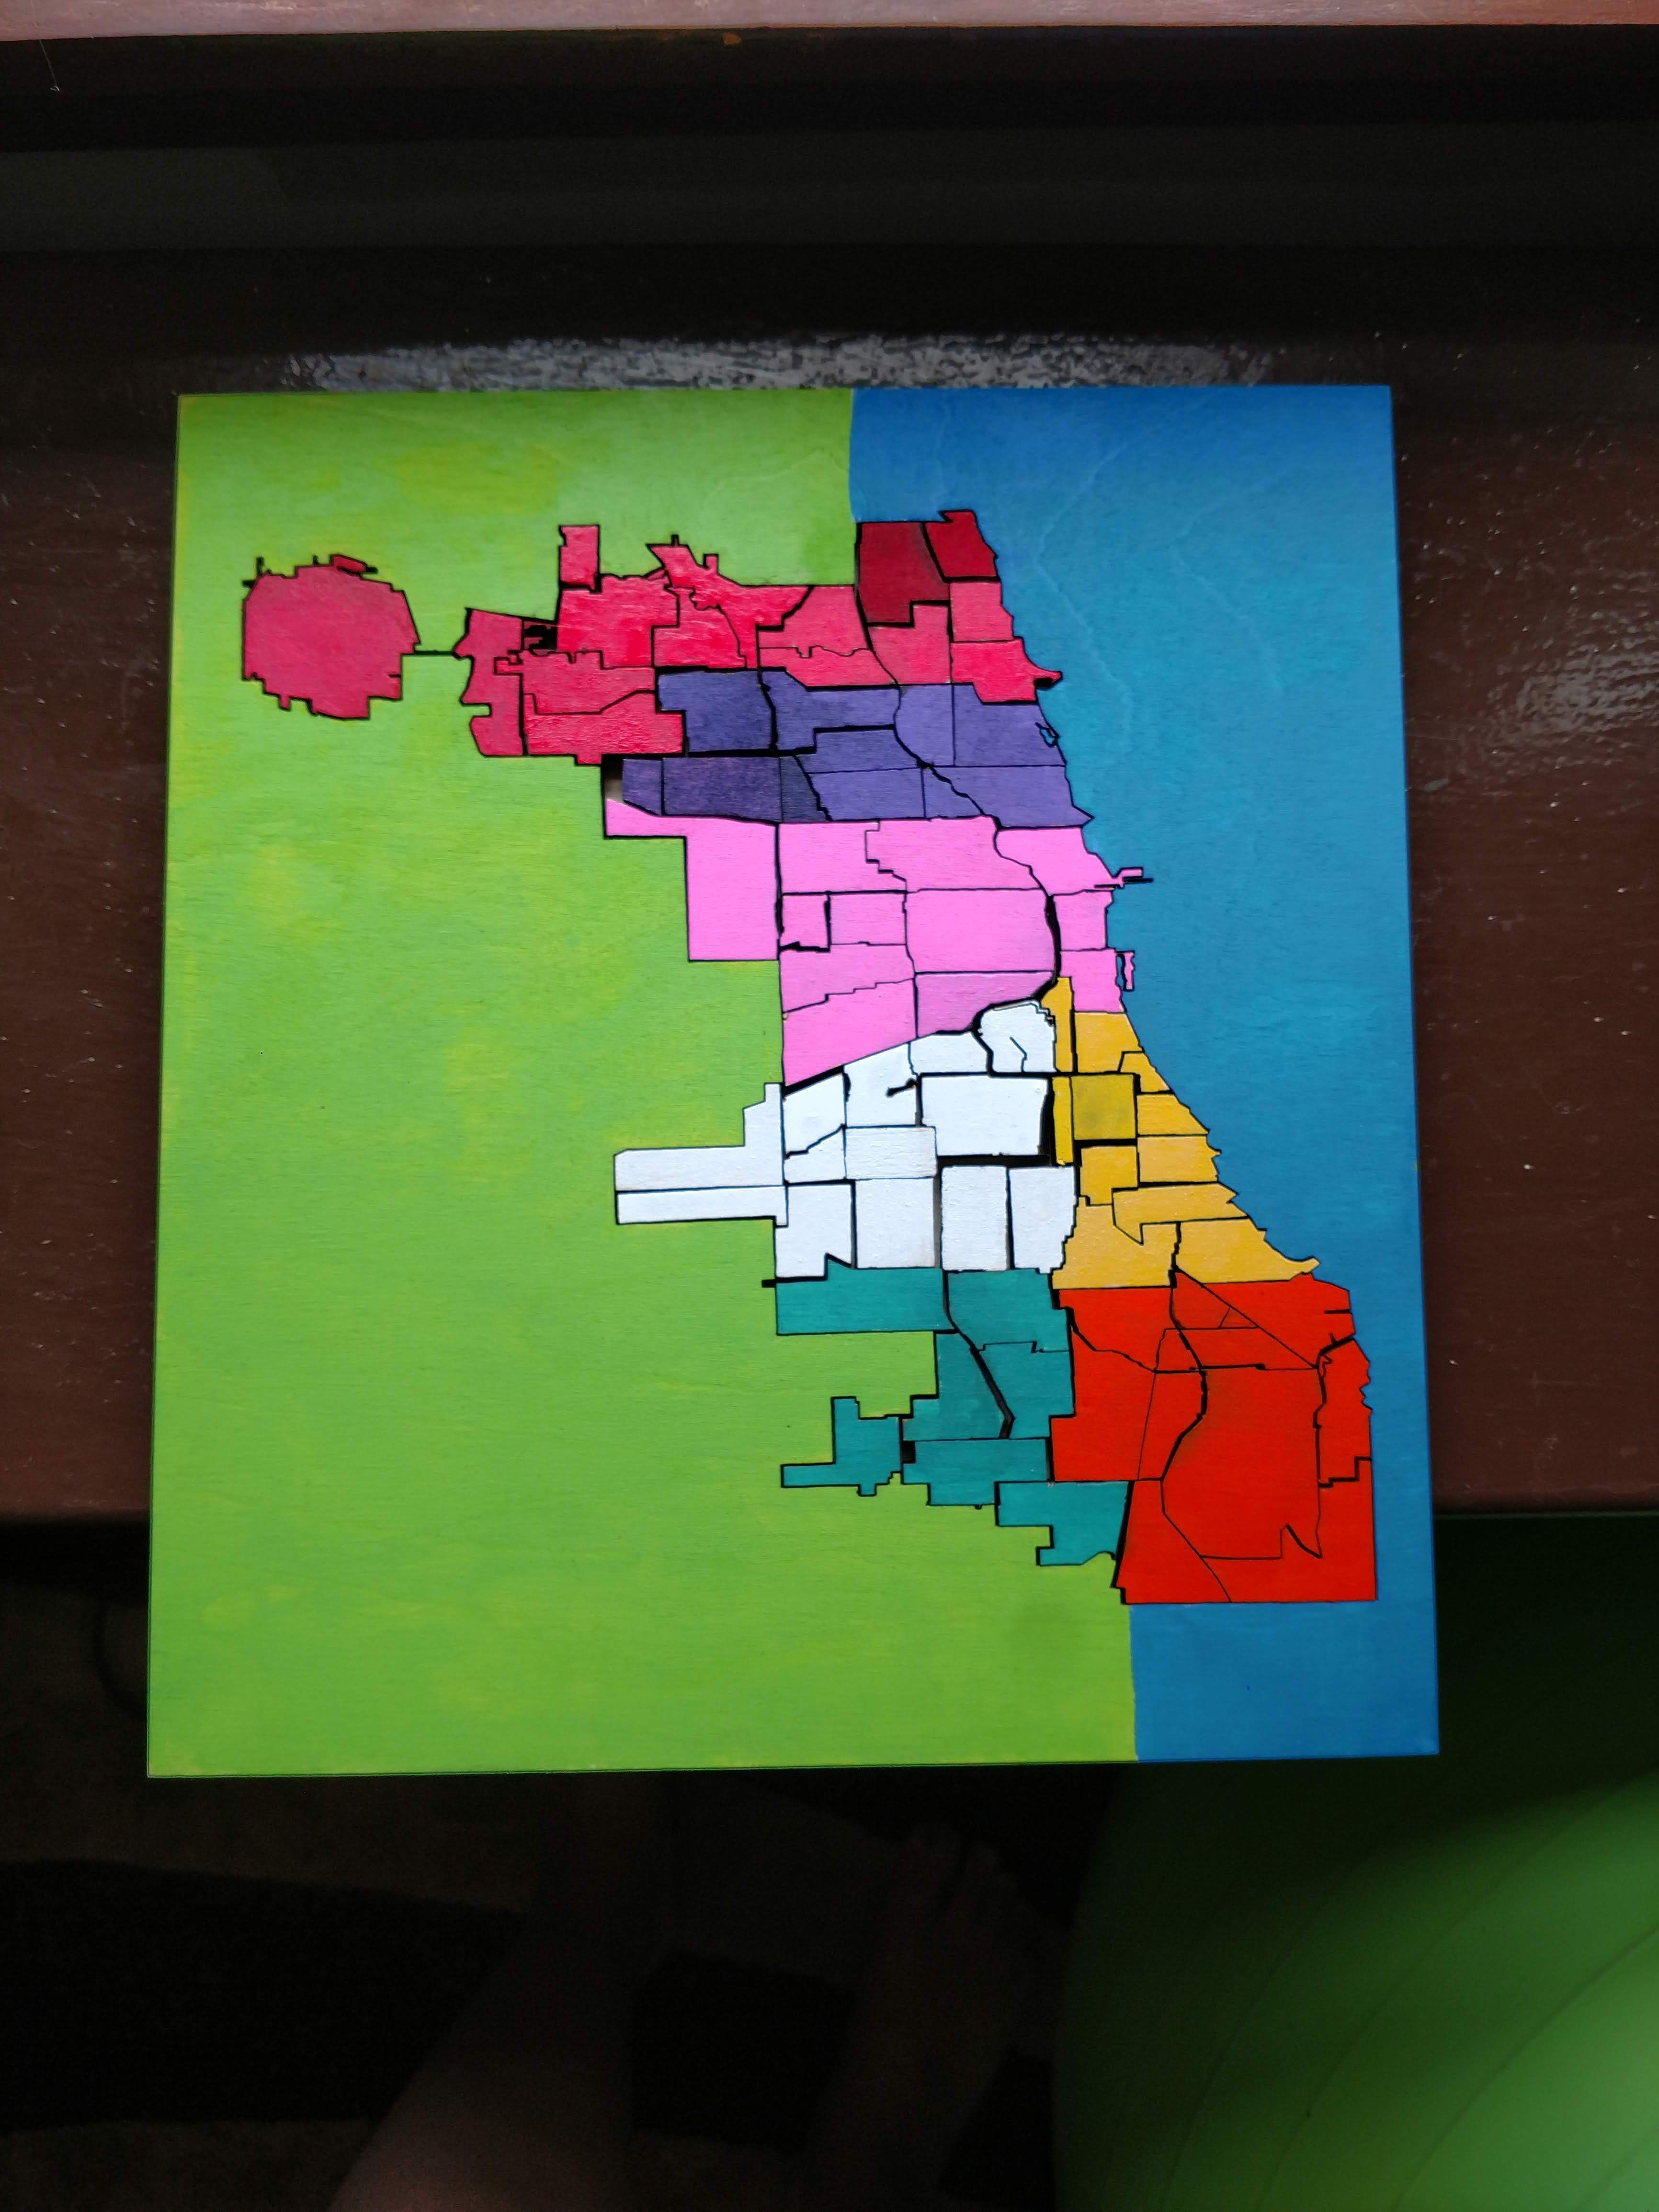 Birchwood Chicago Puzzle! A gift turning into a selling